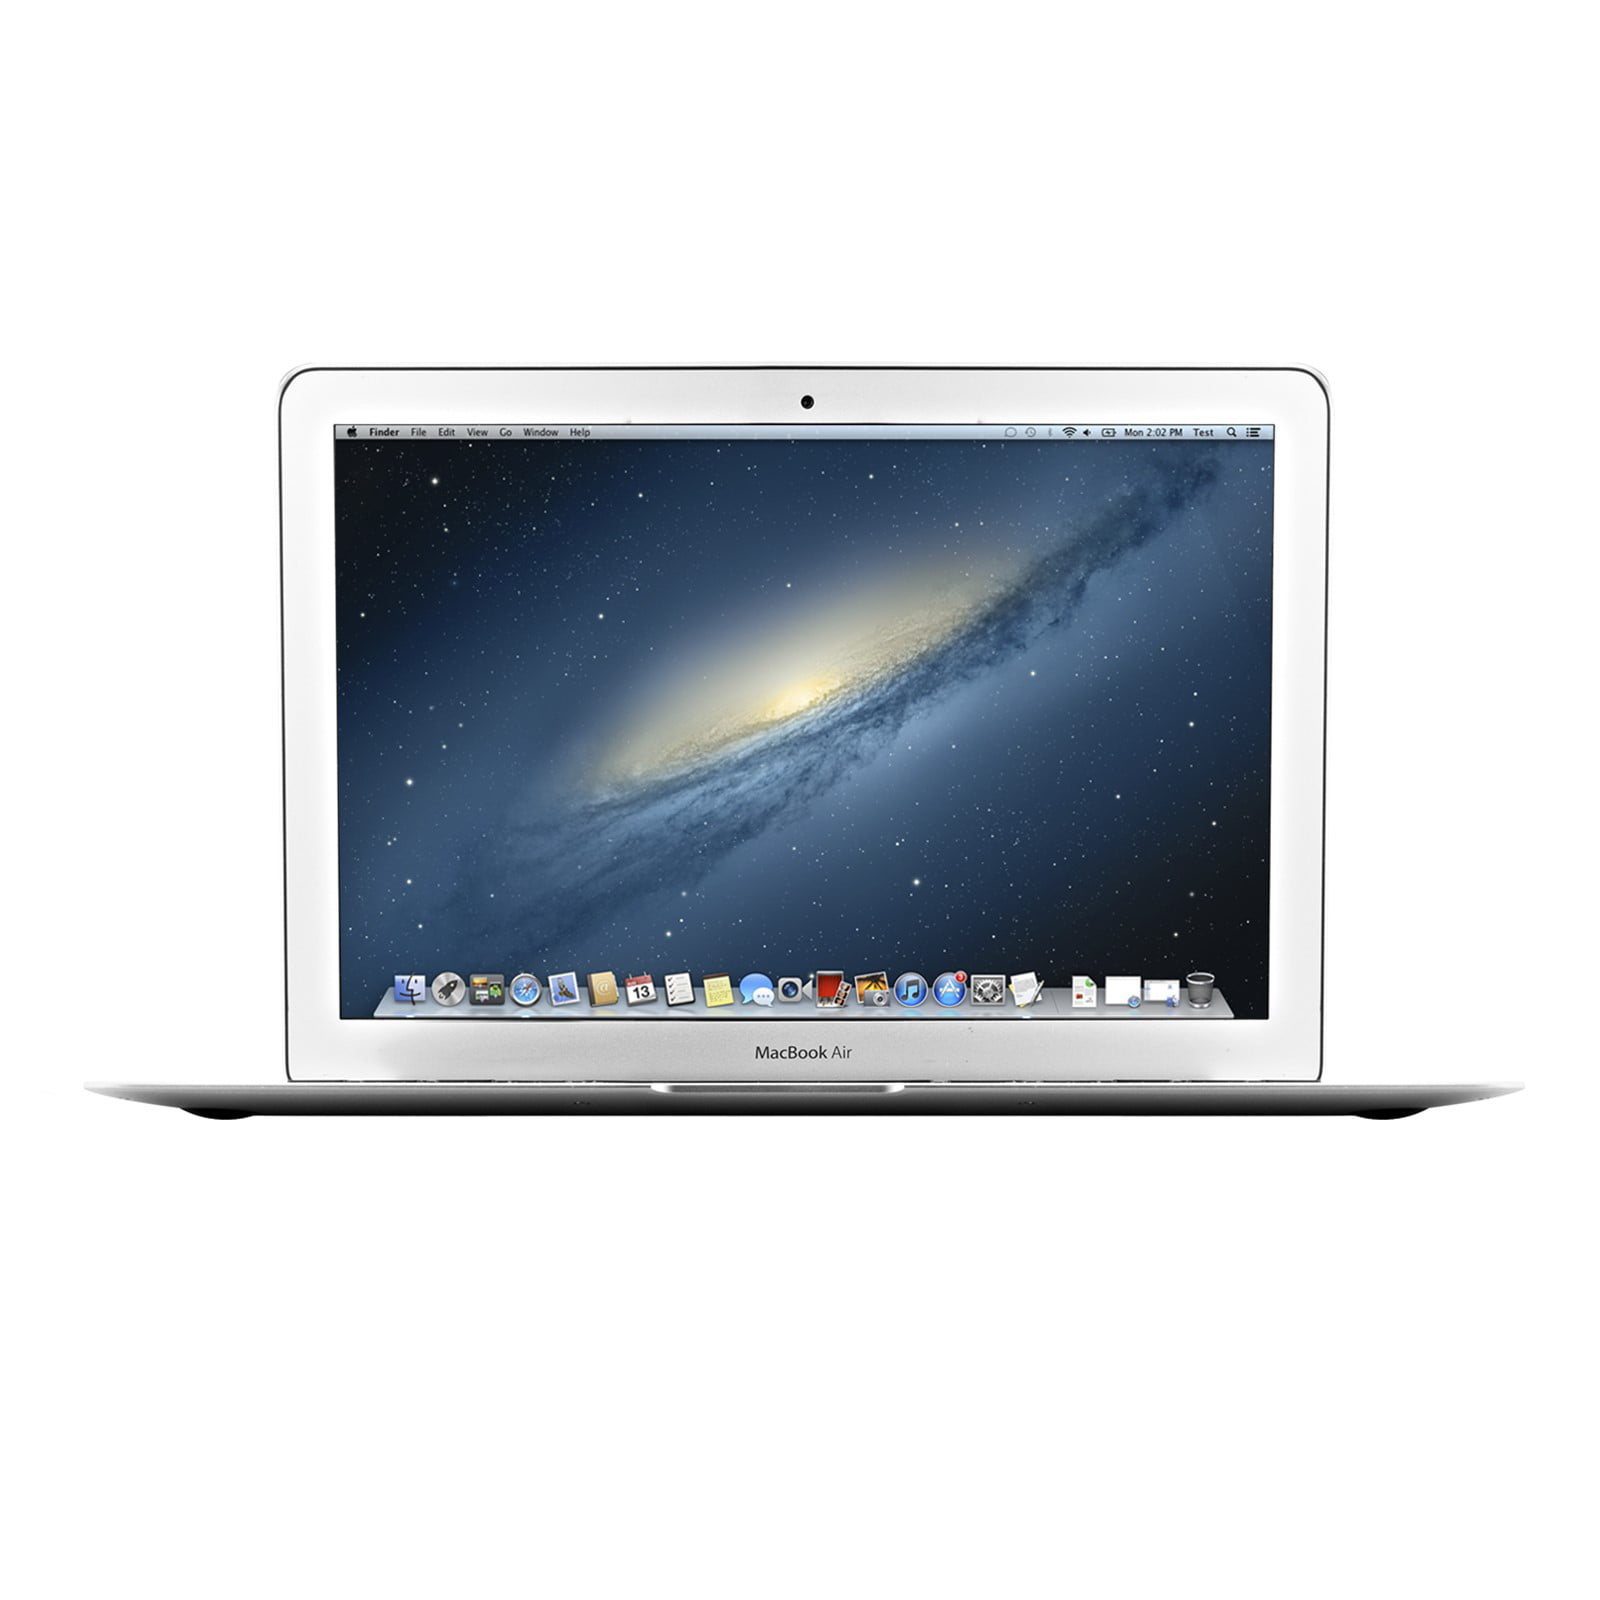 Apple MacBook Air 13.3 Inch Laptop MD760LL A (Certified Refurbished) by Apple